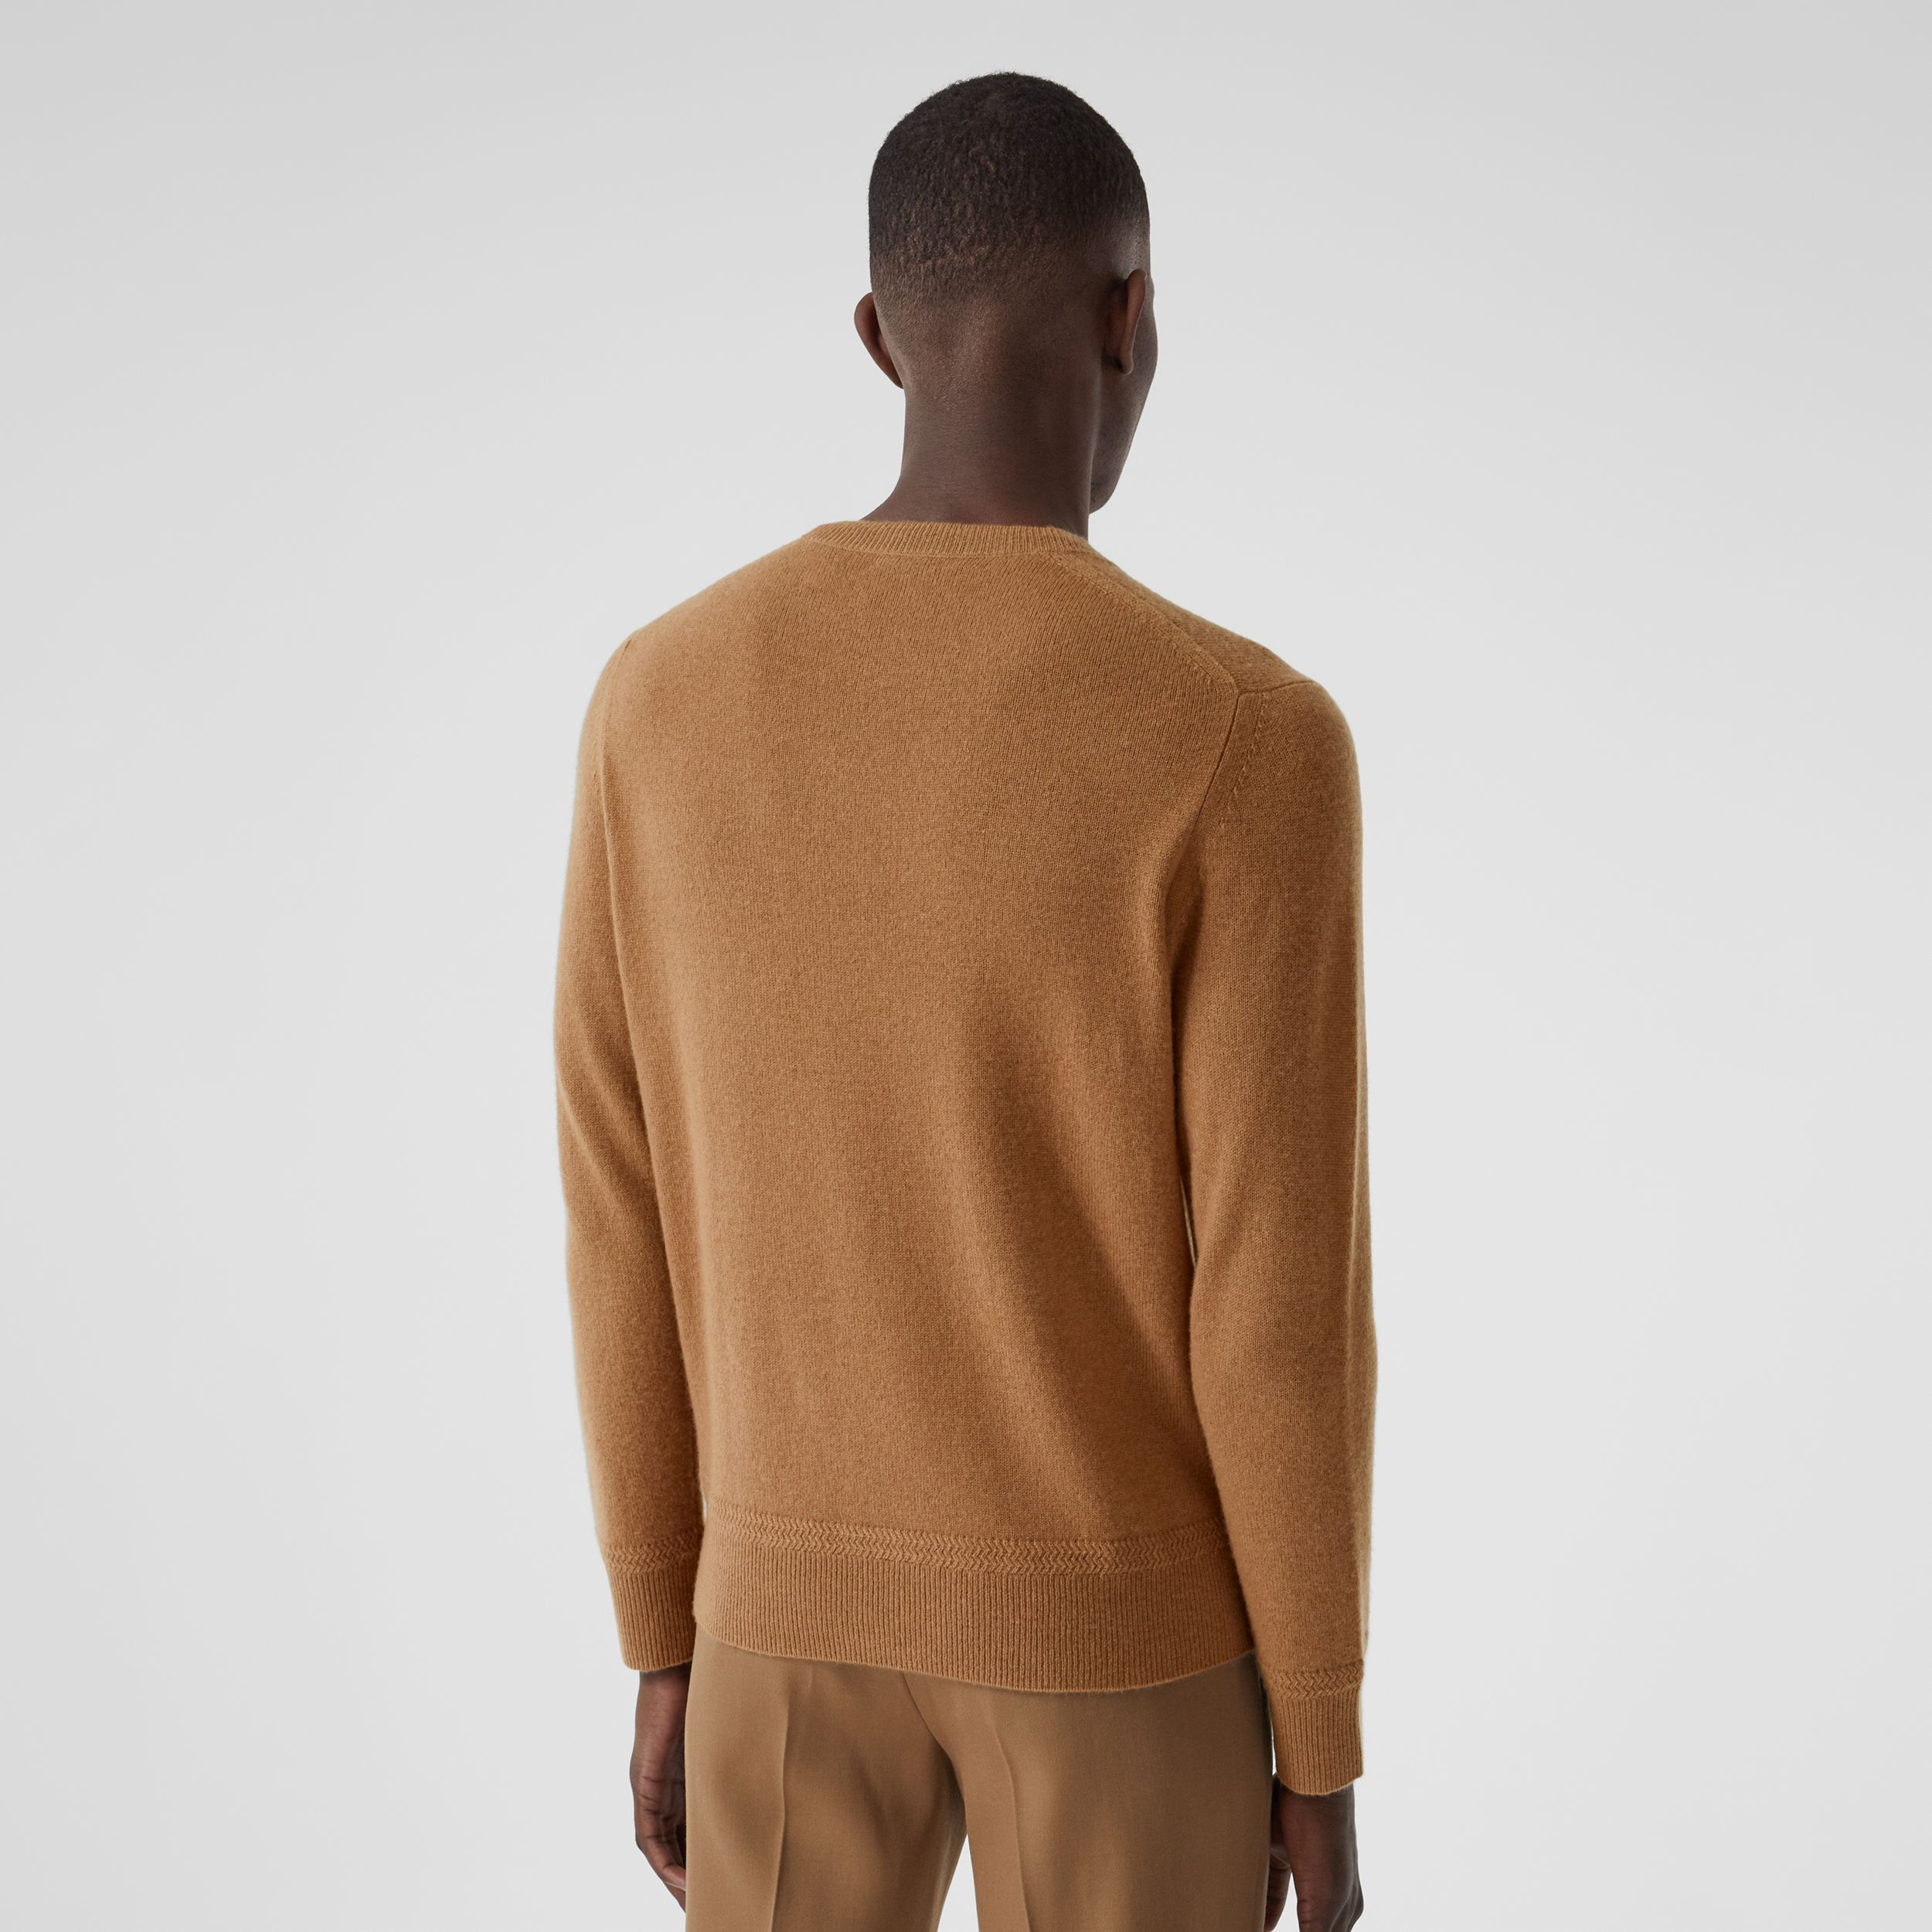 Monogram Motif Cashmere Sweater in Camel - Men | Burberry Singapore - 3